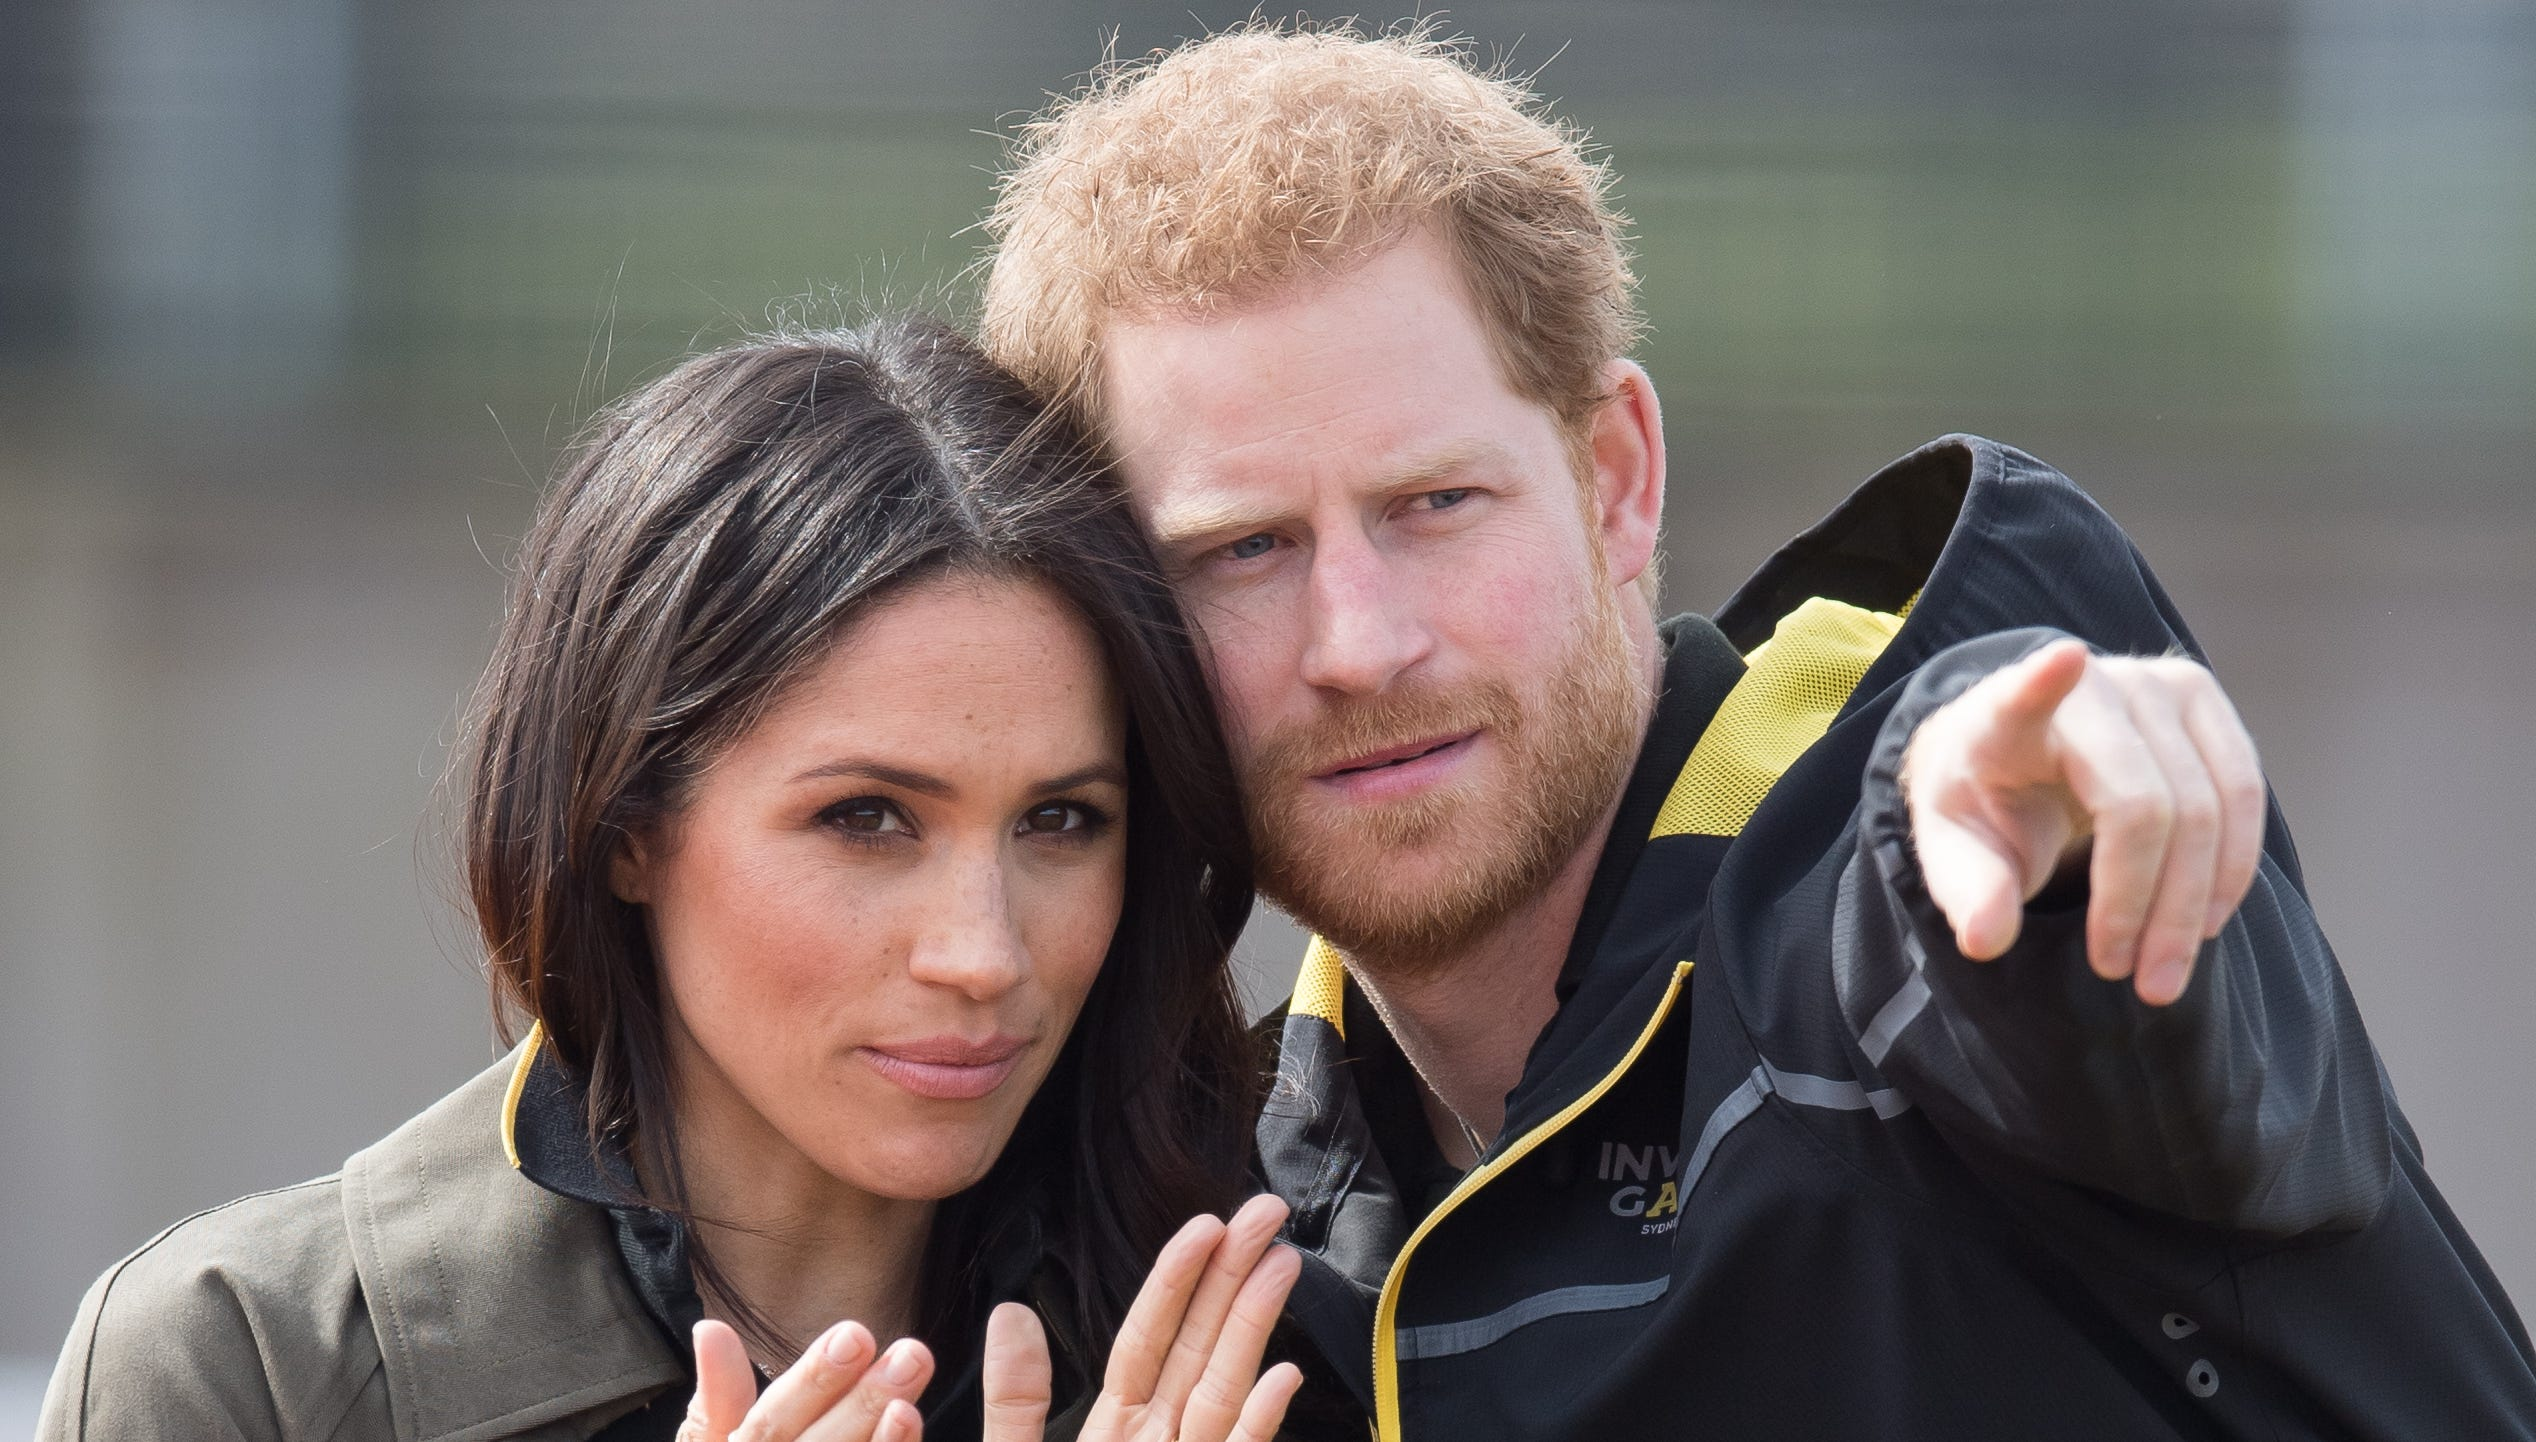 BATH, ENGLAND - APRIL 06:  Prince Harry and Meghan Markle attend the UK Team Trials for the Invictus Games Sydney 2018 at University of Bath on April 6, 2018 in Bath, England.  (Photo by Samir Hussein/WireImage) ORG XMIT: 775147790 ORIG FILE ID: 942779182